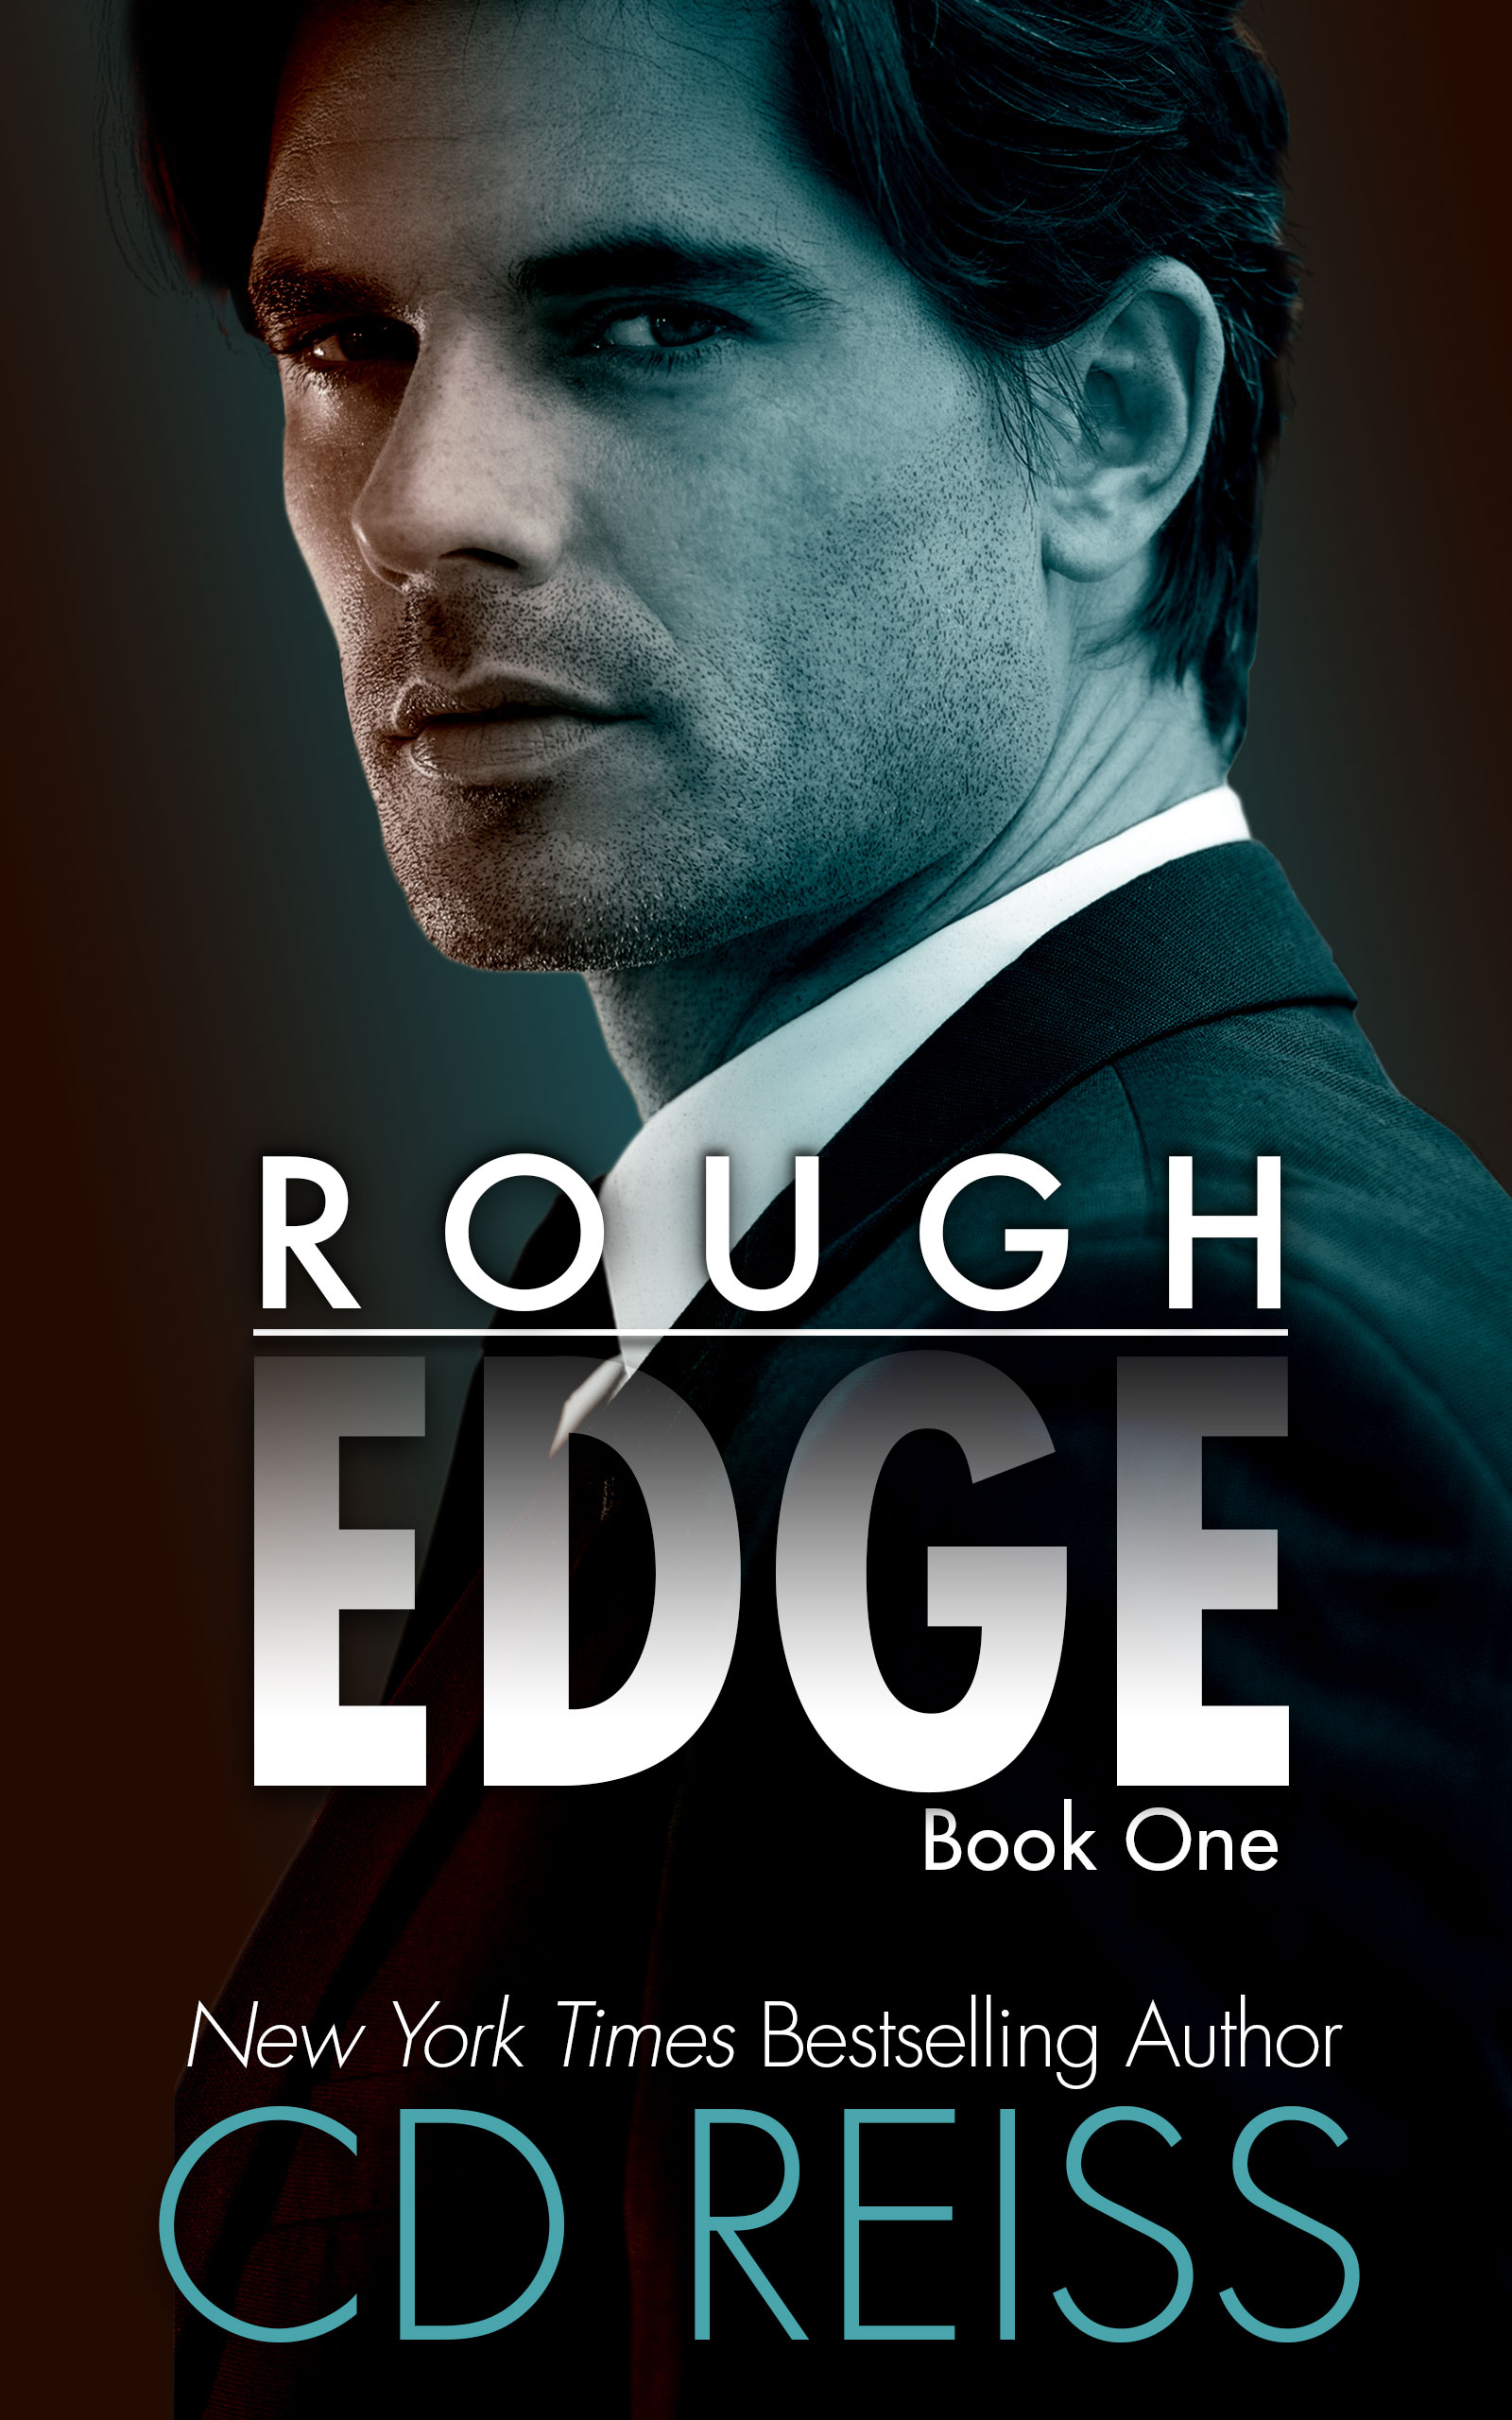 Rough Edge, book one of the new Edge Series by New York Times bestselling Romance Author CD Reiss